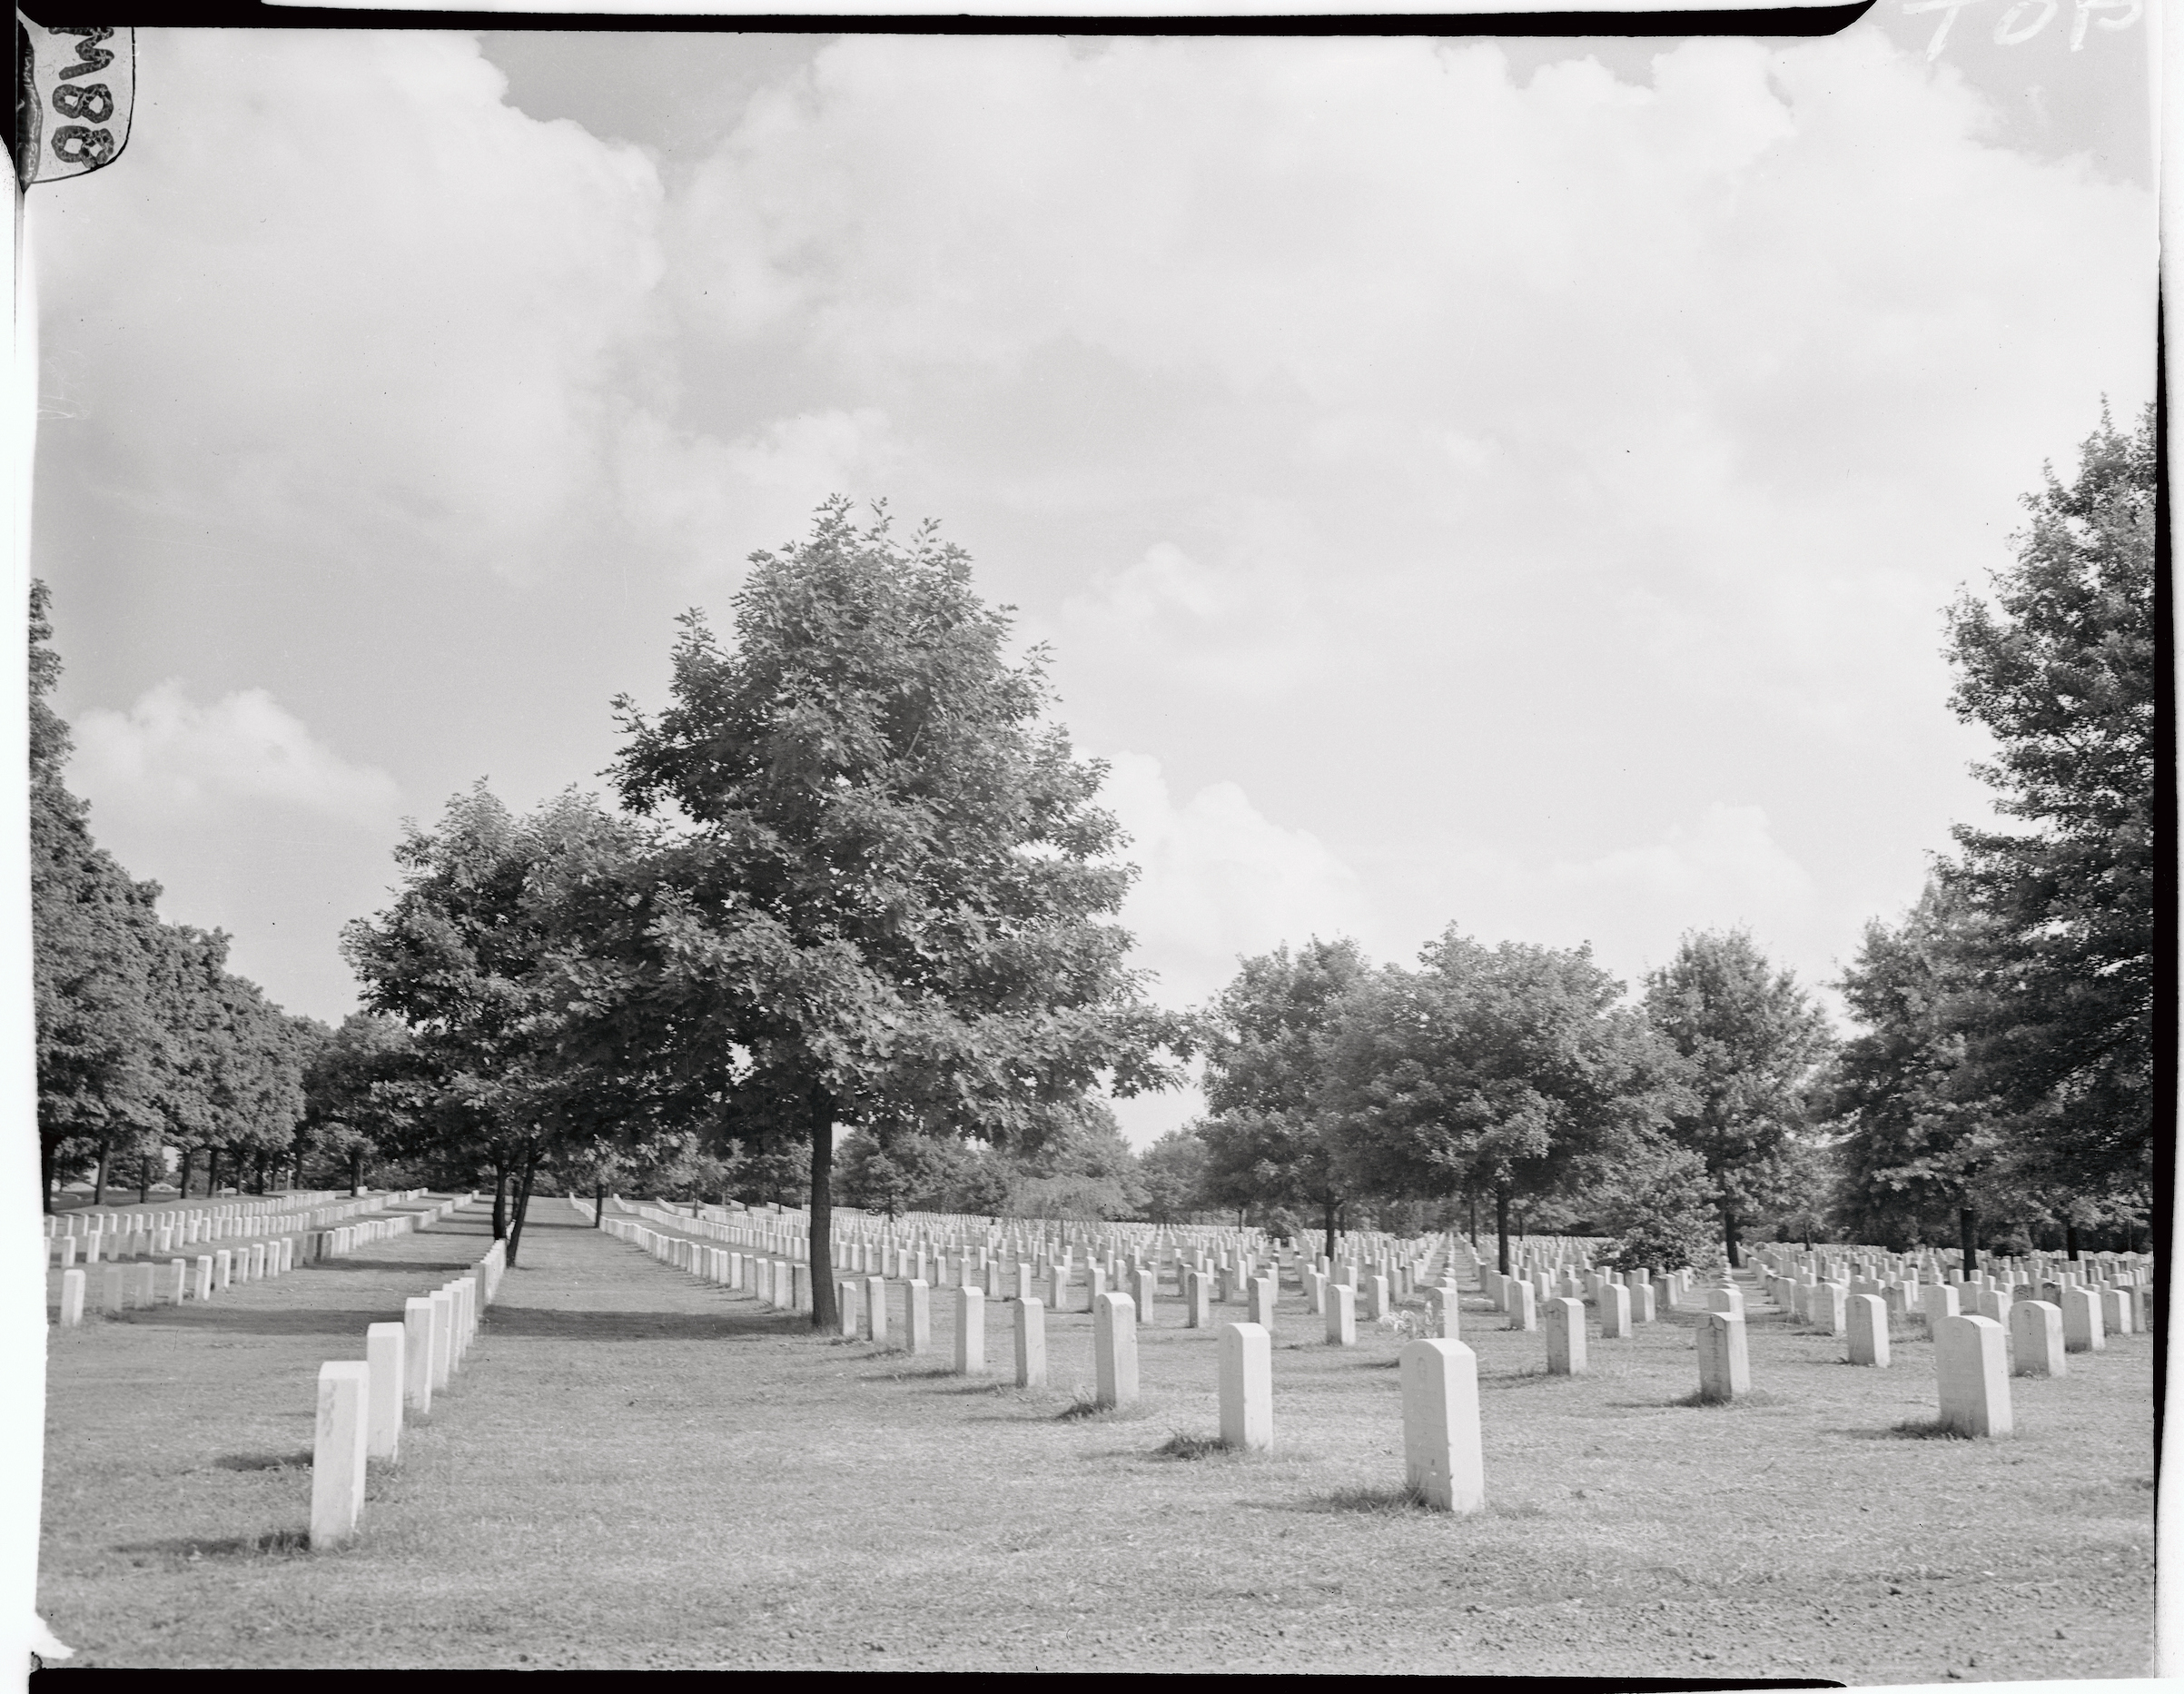 View of Arlington Cemetery in 1946